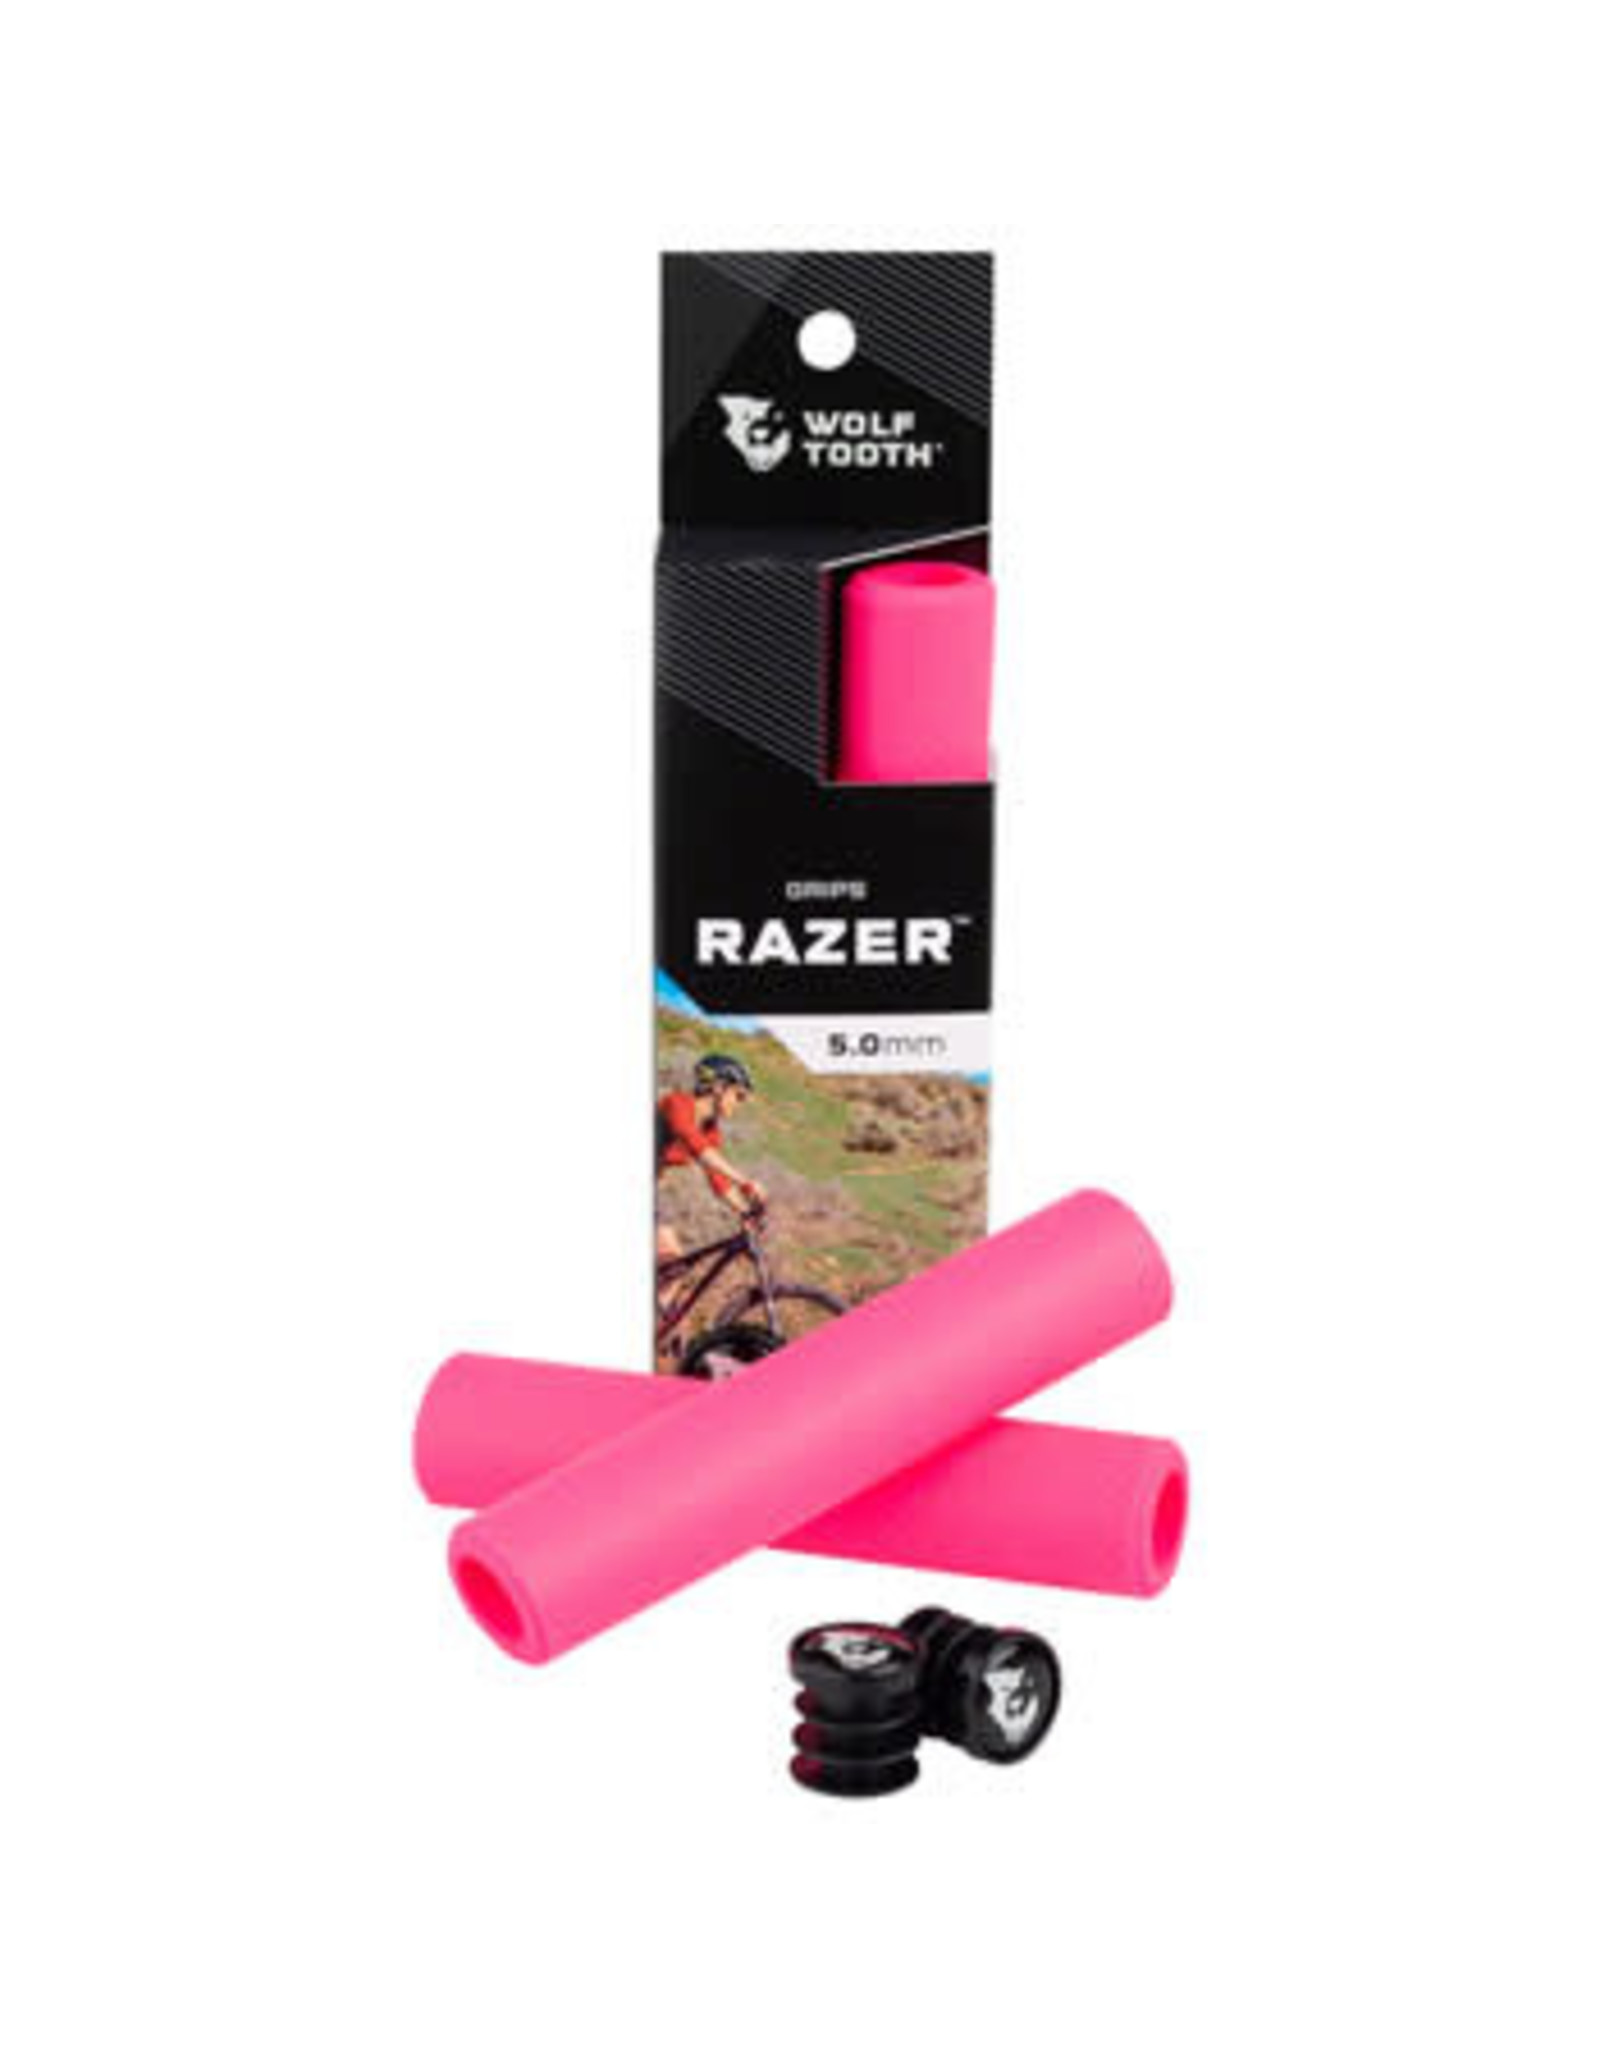 Wolf Tooth Wolf Tooth Razer Grips - Pink